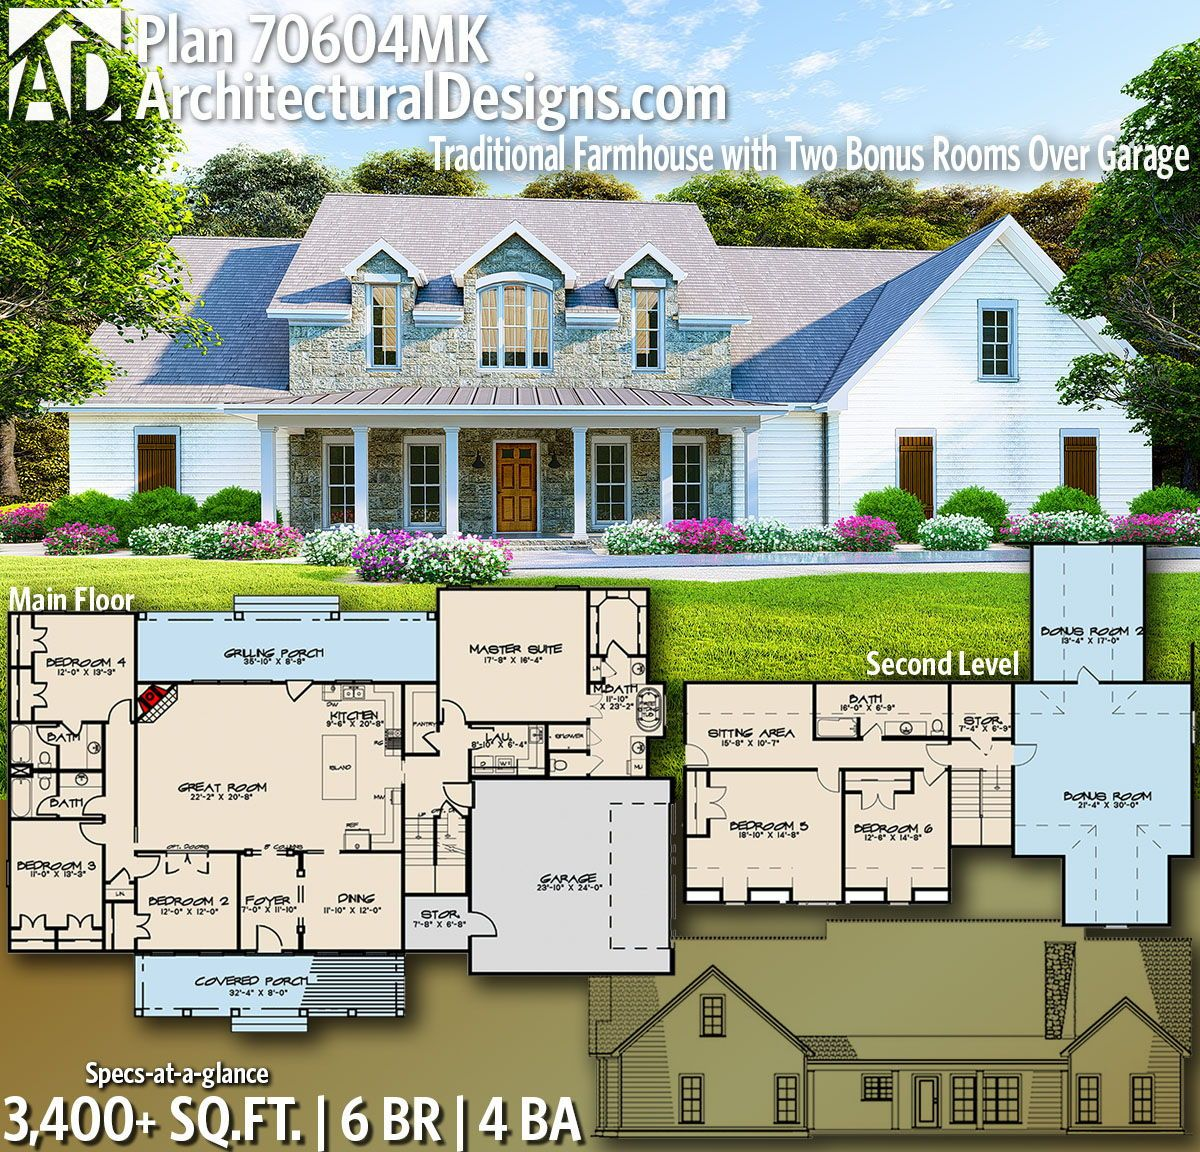 Plan 70604mk Traditional Farmhouse With Two Bonus Rooms Over Garage House Floor Plans New House Plans Building A House